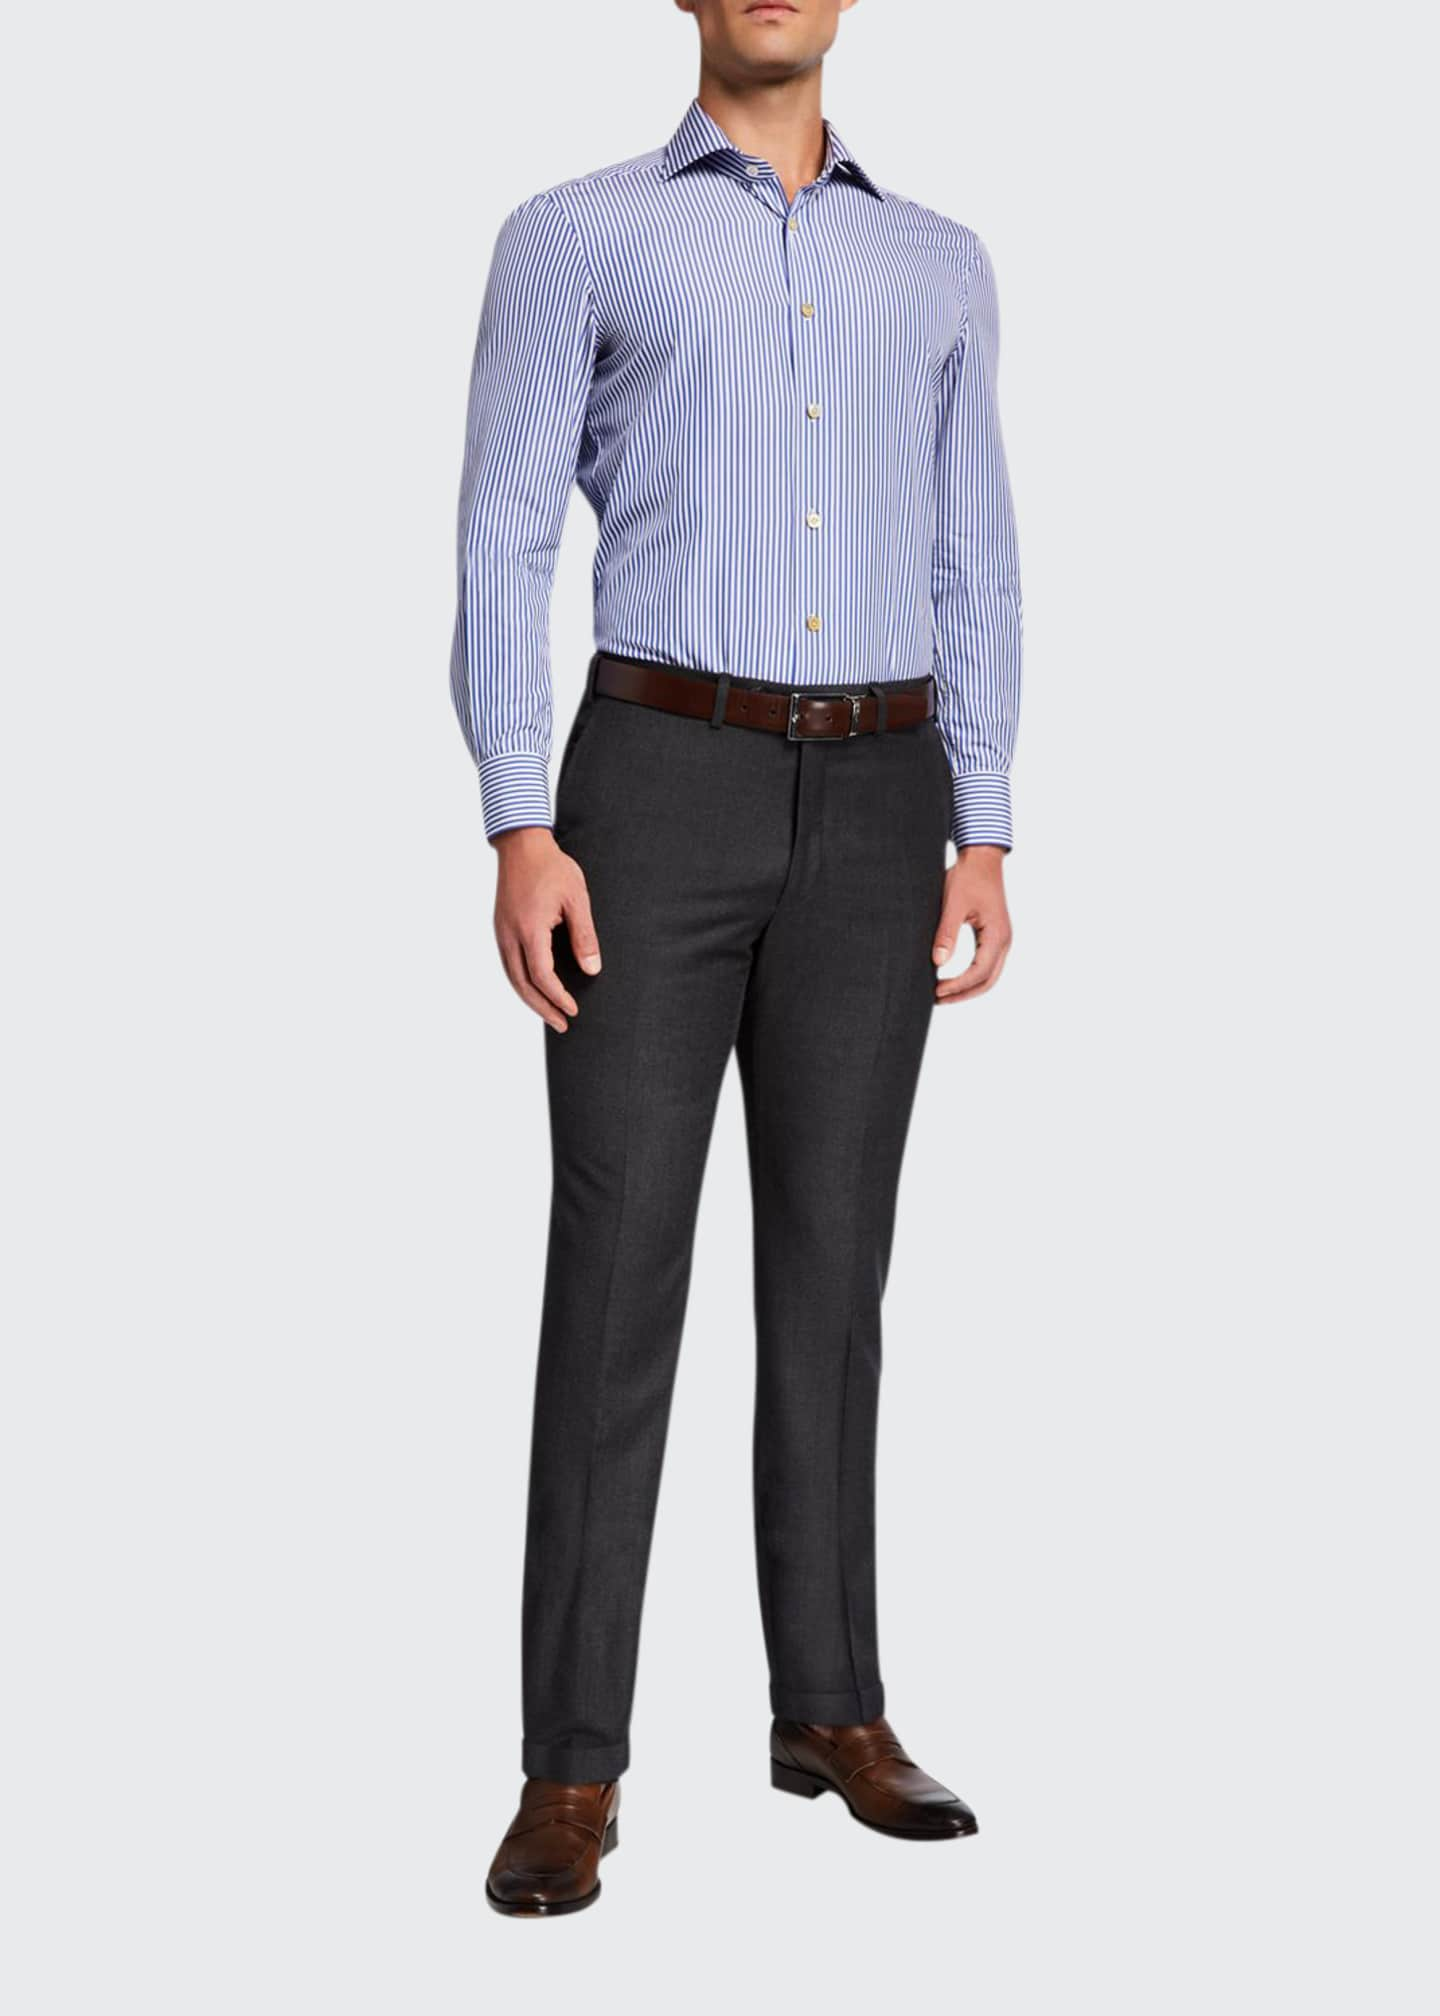 Image 1 of 3: Men's Wool Flat-Front Dress Pants, Charcoal